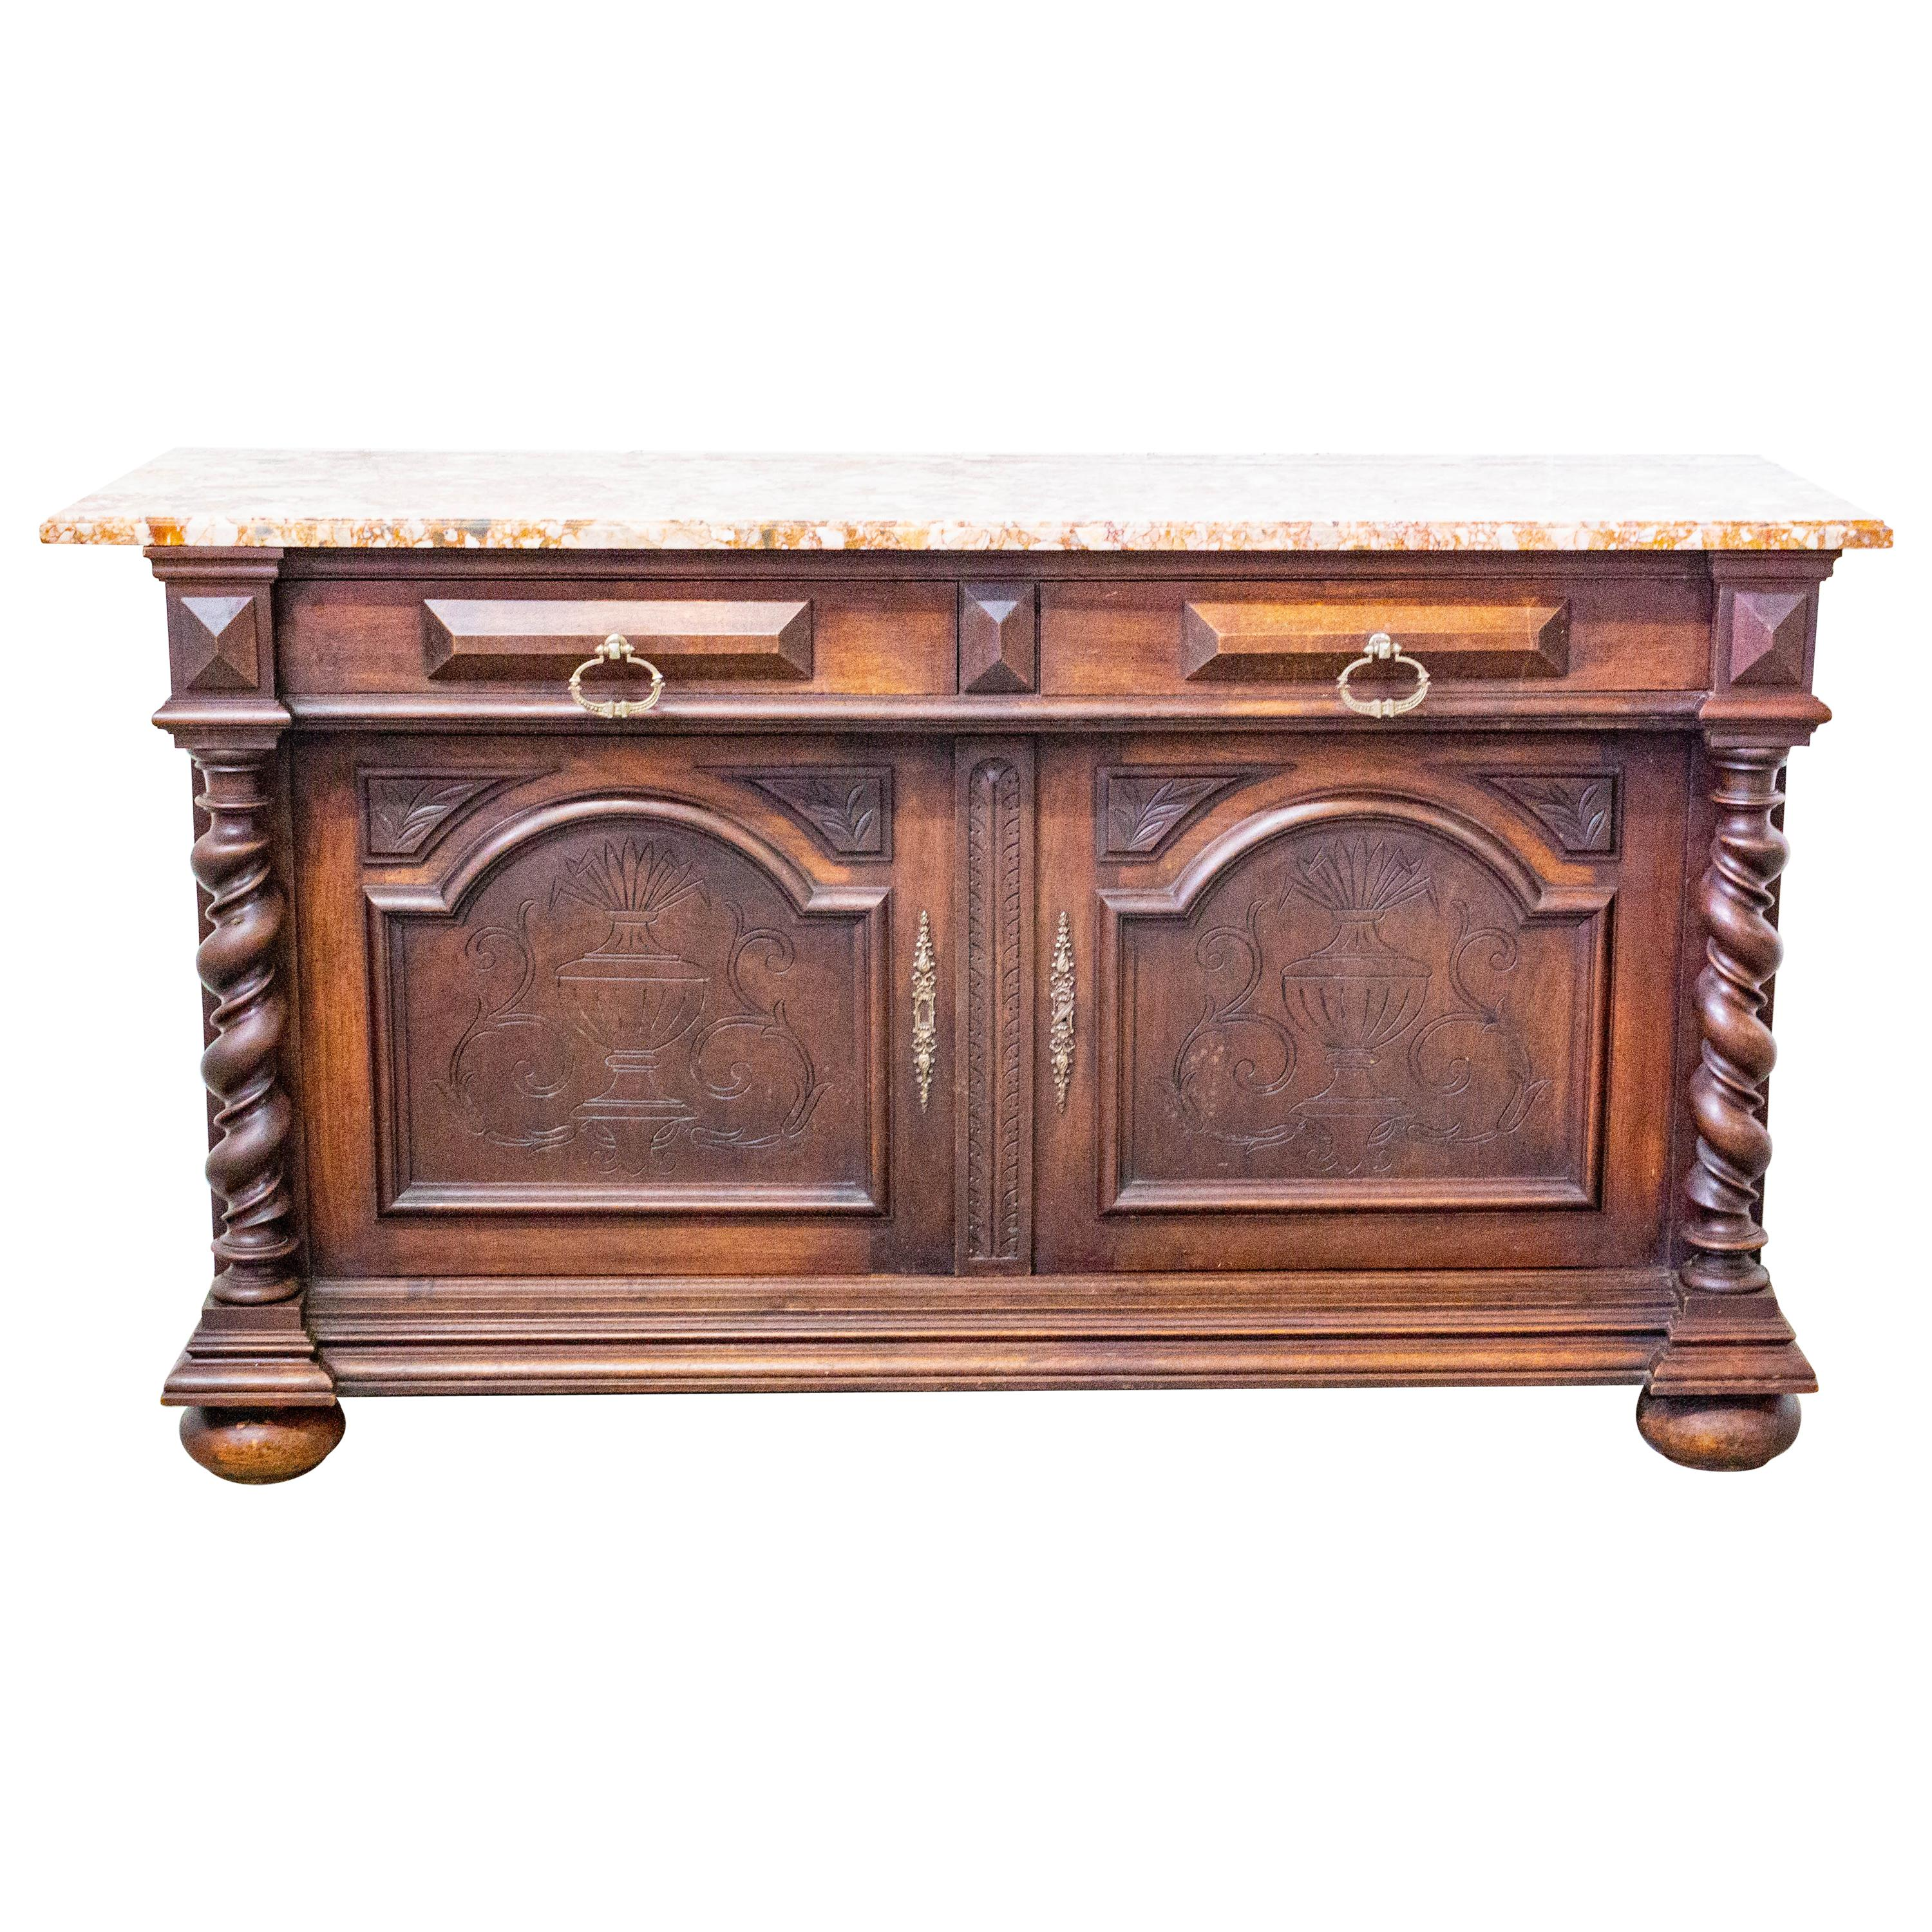 Credenza Sideboard French Marble-Top Buffet Louis XIII Style, Late 19th Century